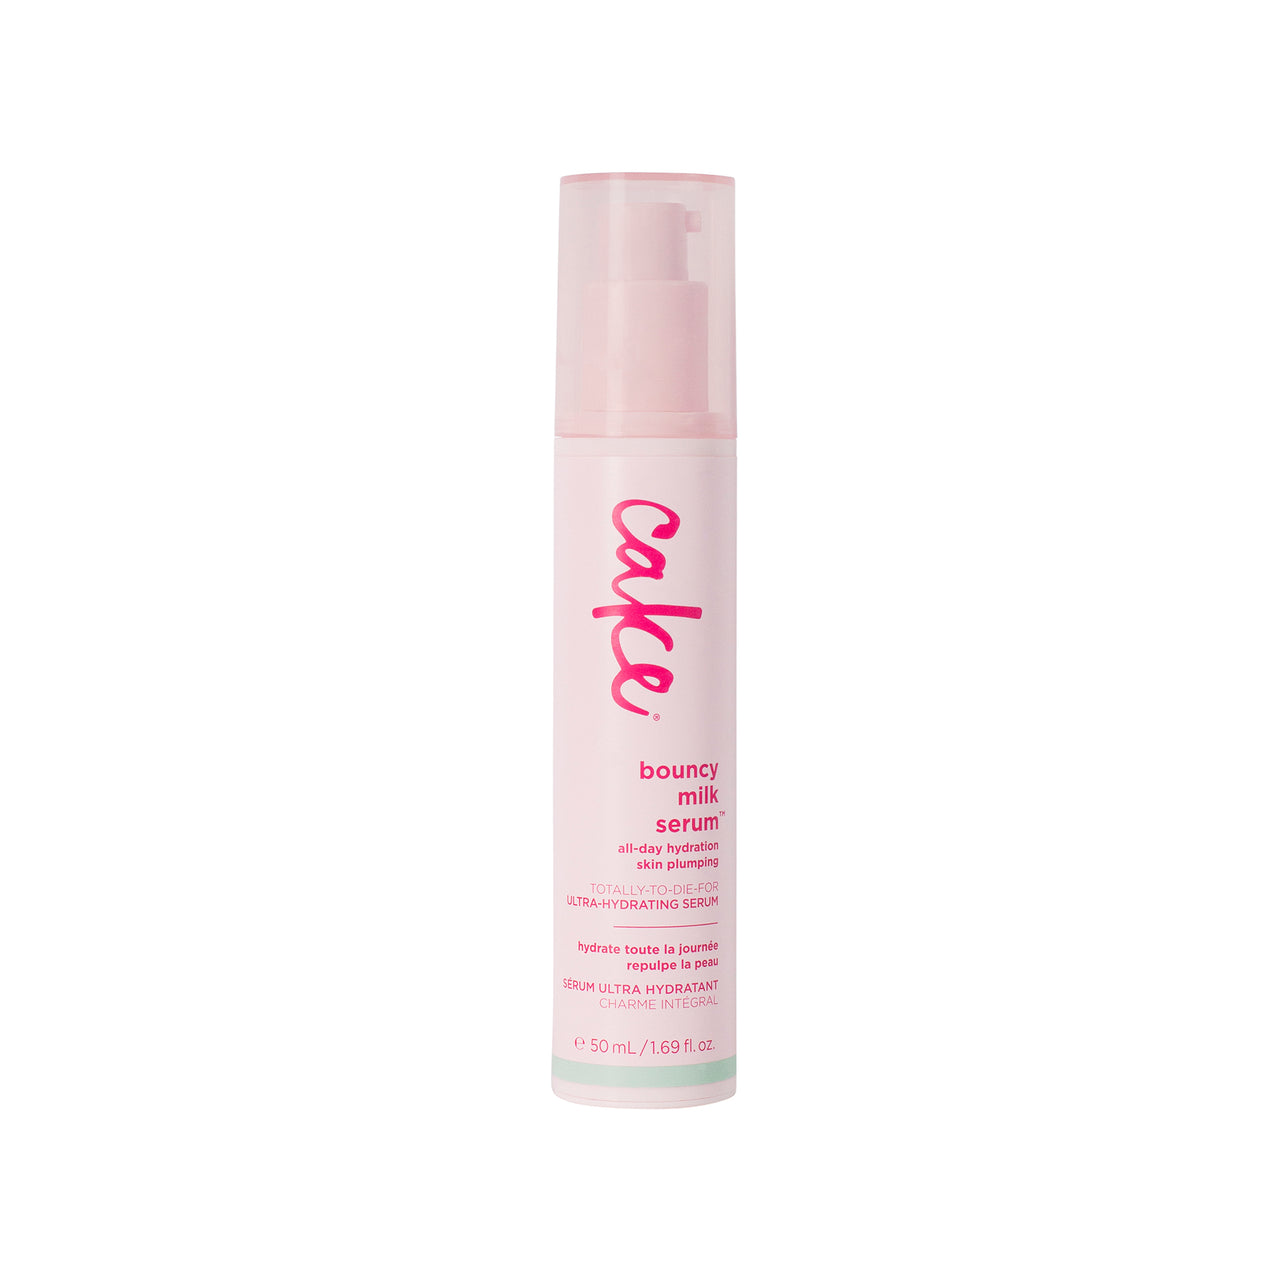 Bouncy Milk Serum  Ultra Hydrating Serum, 50 mL